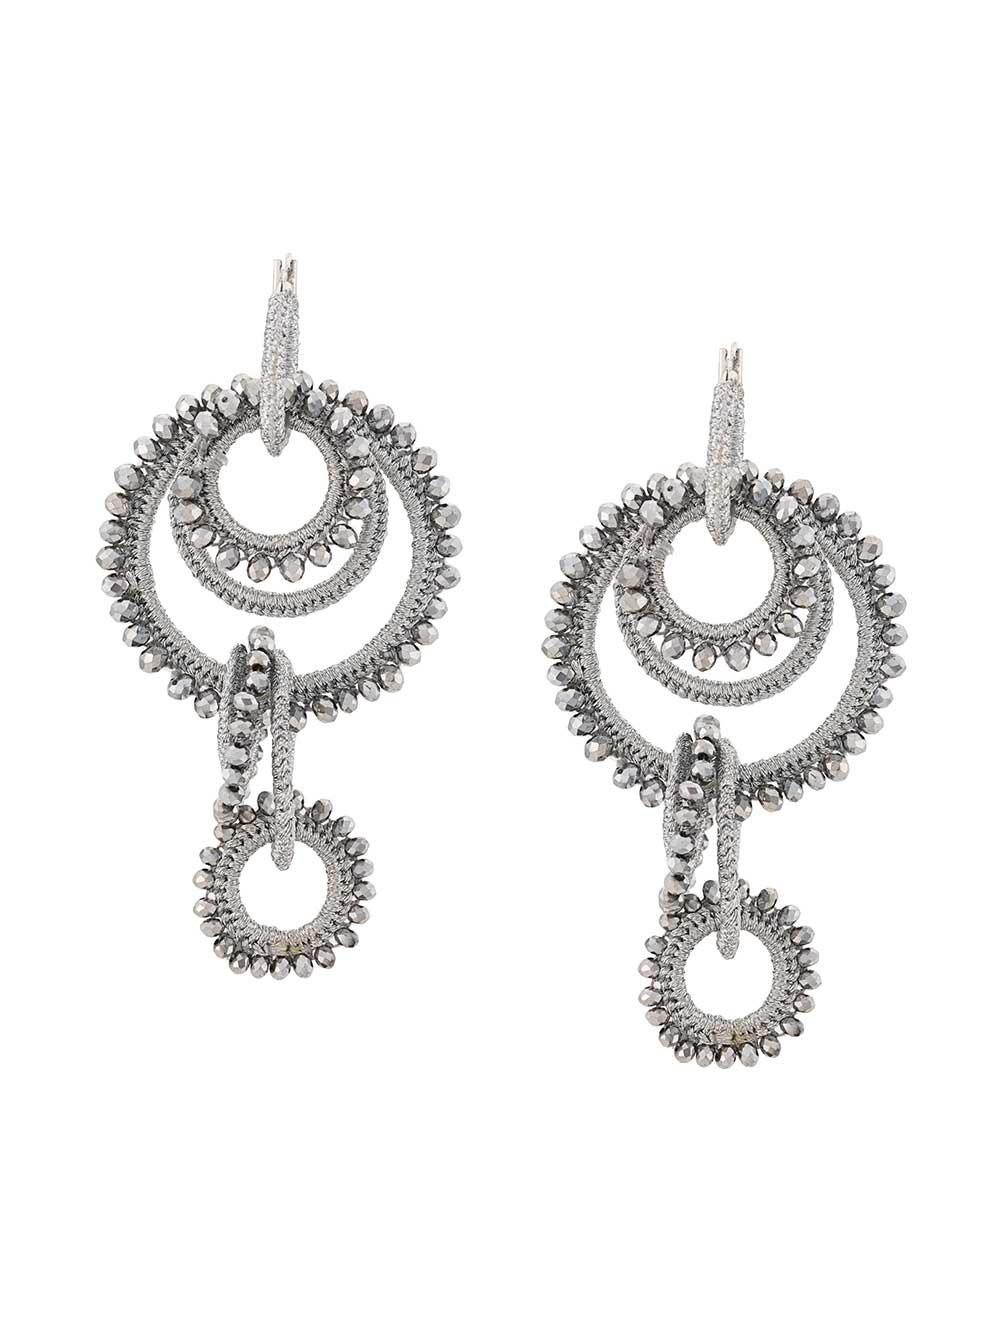 Tallulah Multi Ring Earrings